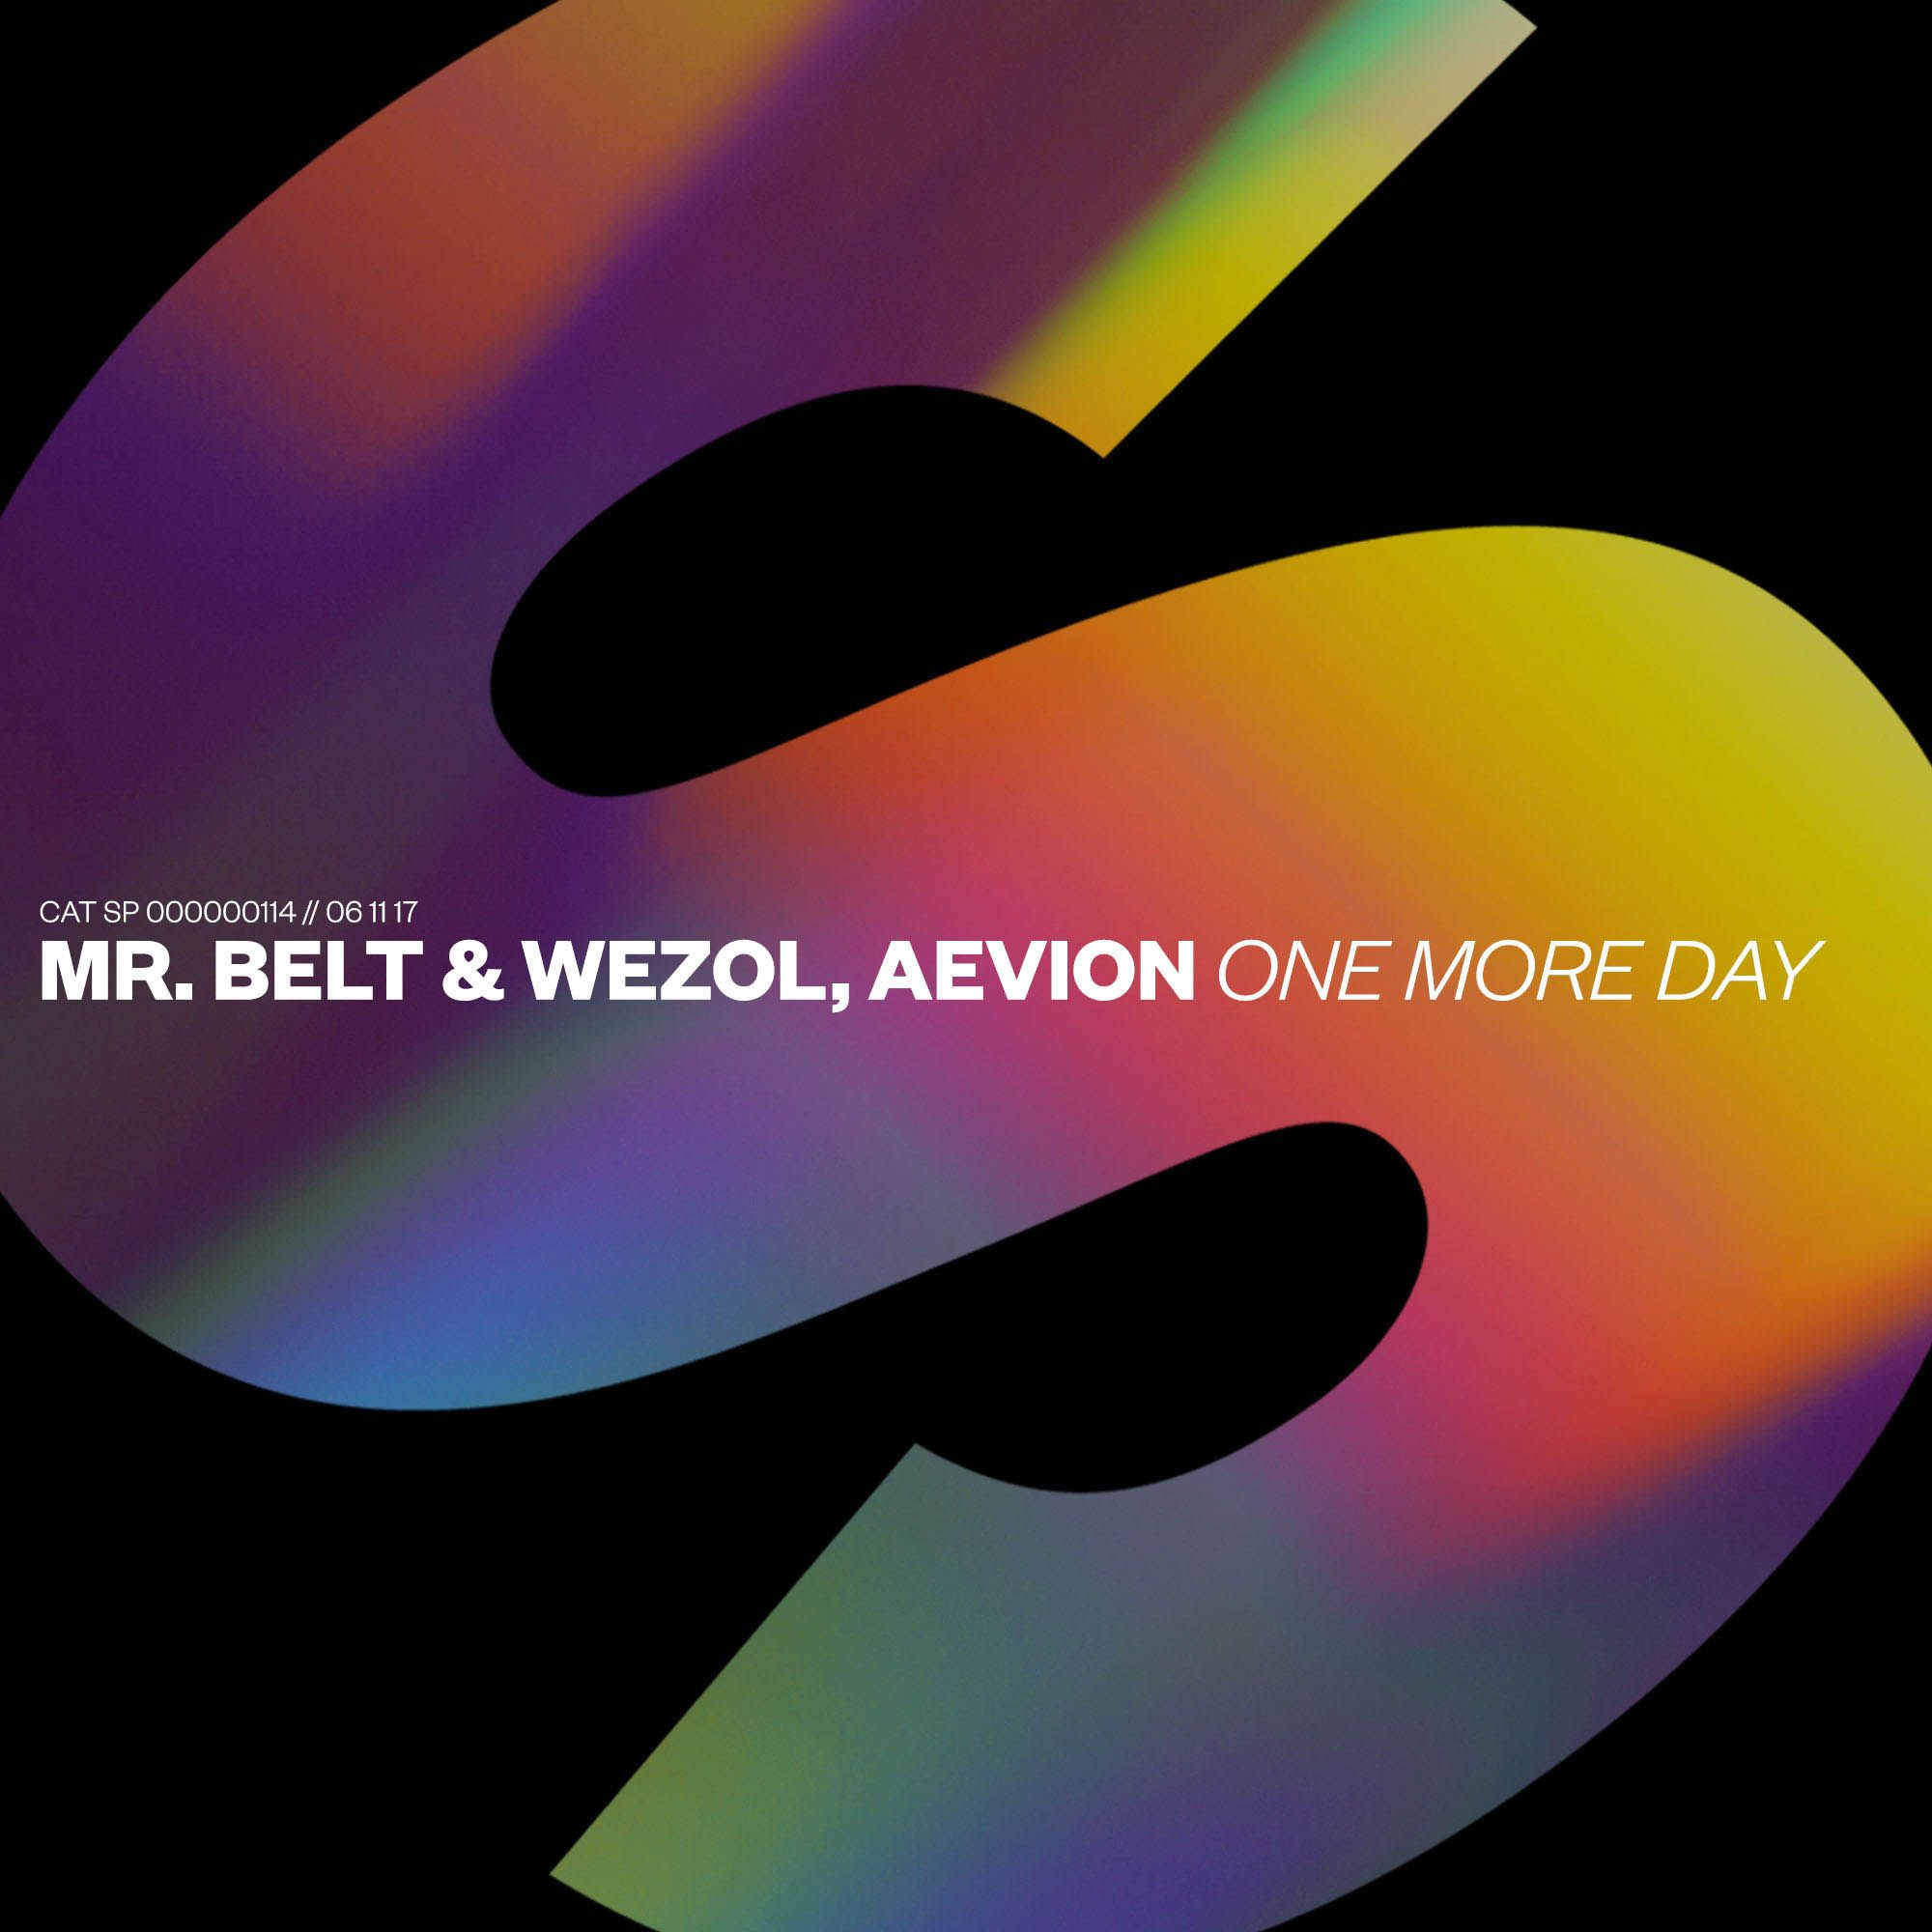 sprs_mr._belt_wezol_aevion_-_one_more_day.jpg